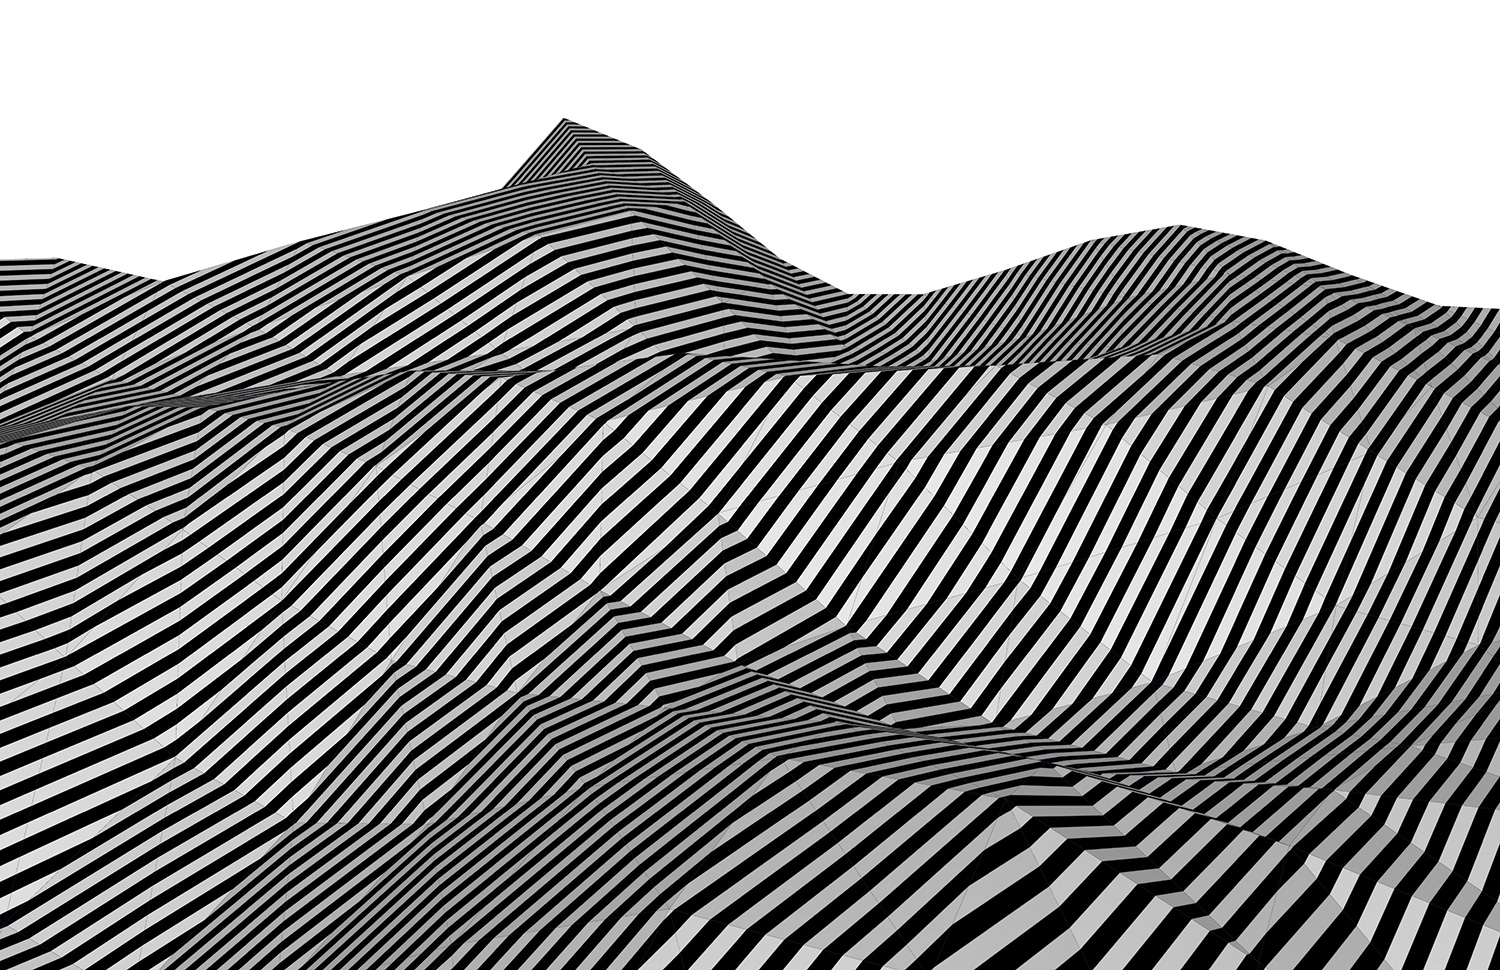 T_Atwell_Linear_Mountains_Mesh.jpg